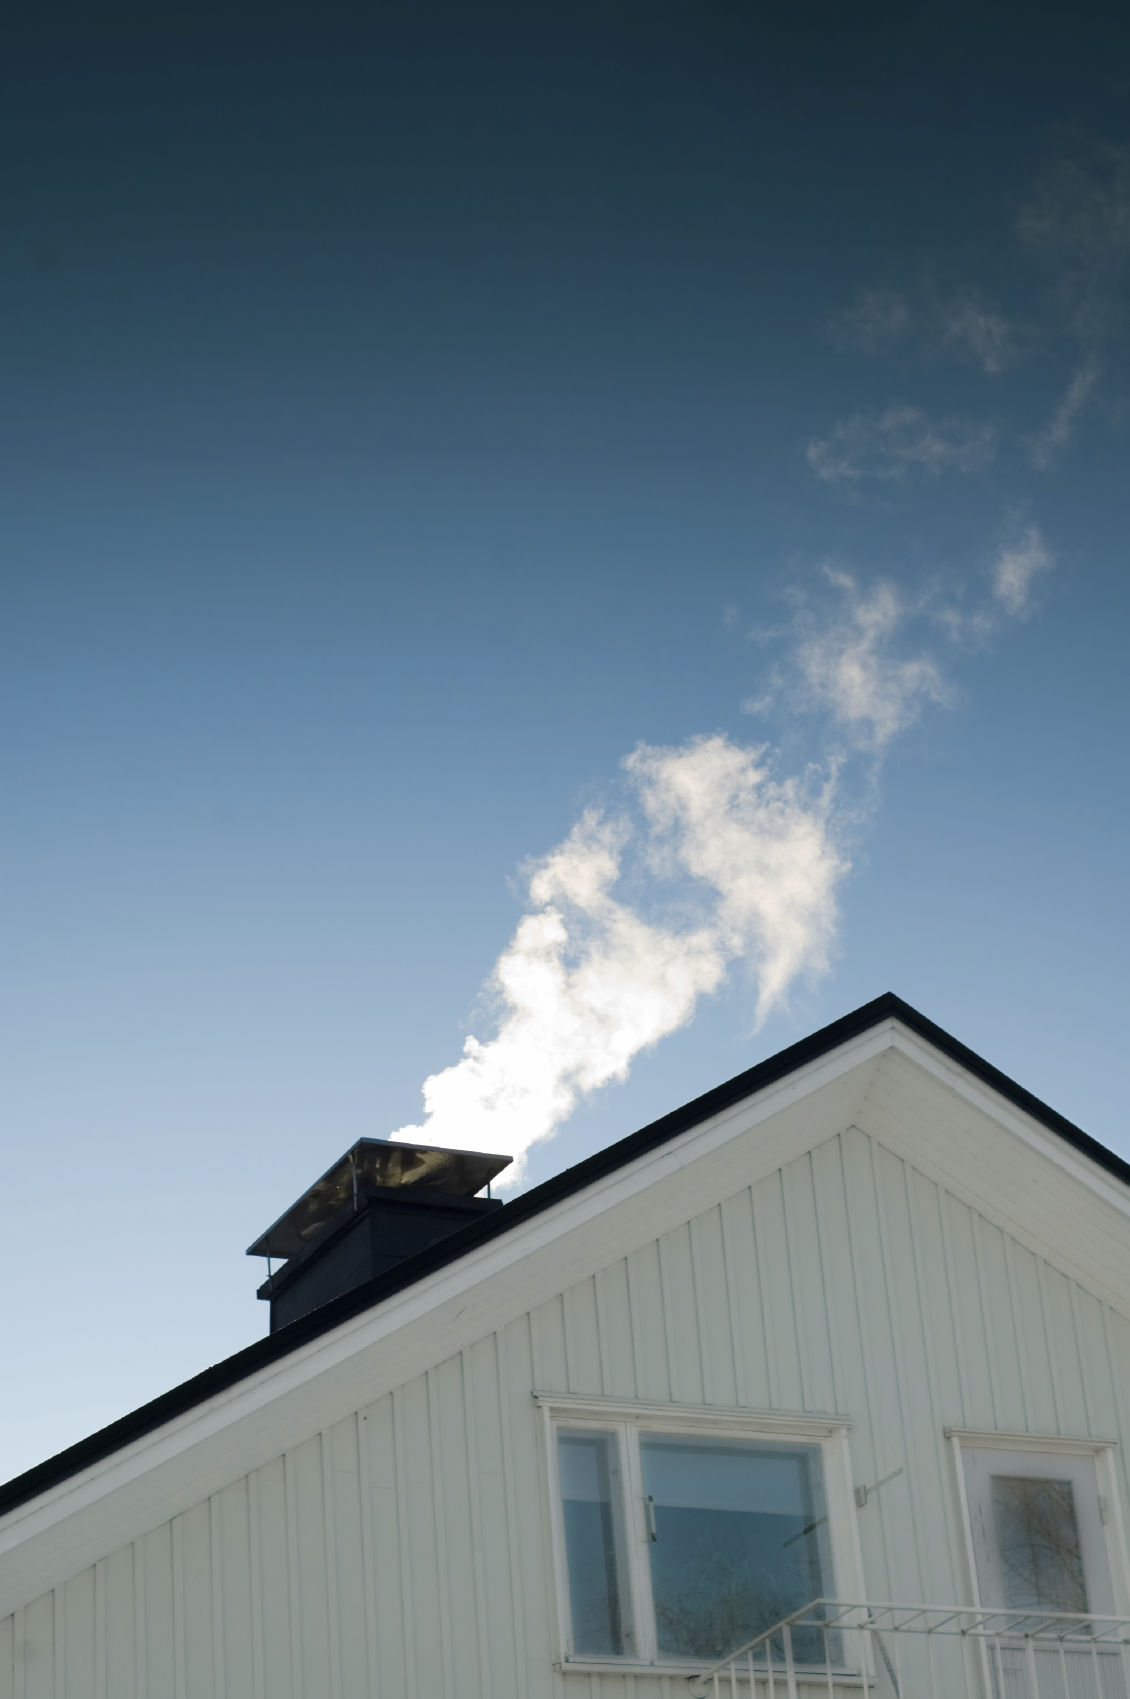 Image of chimney with smoke